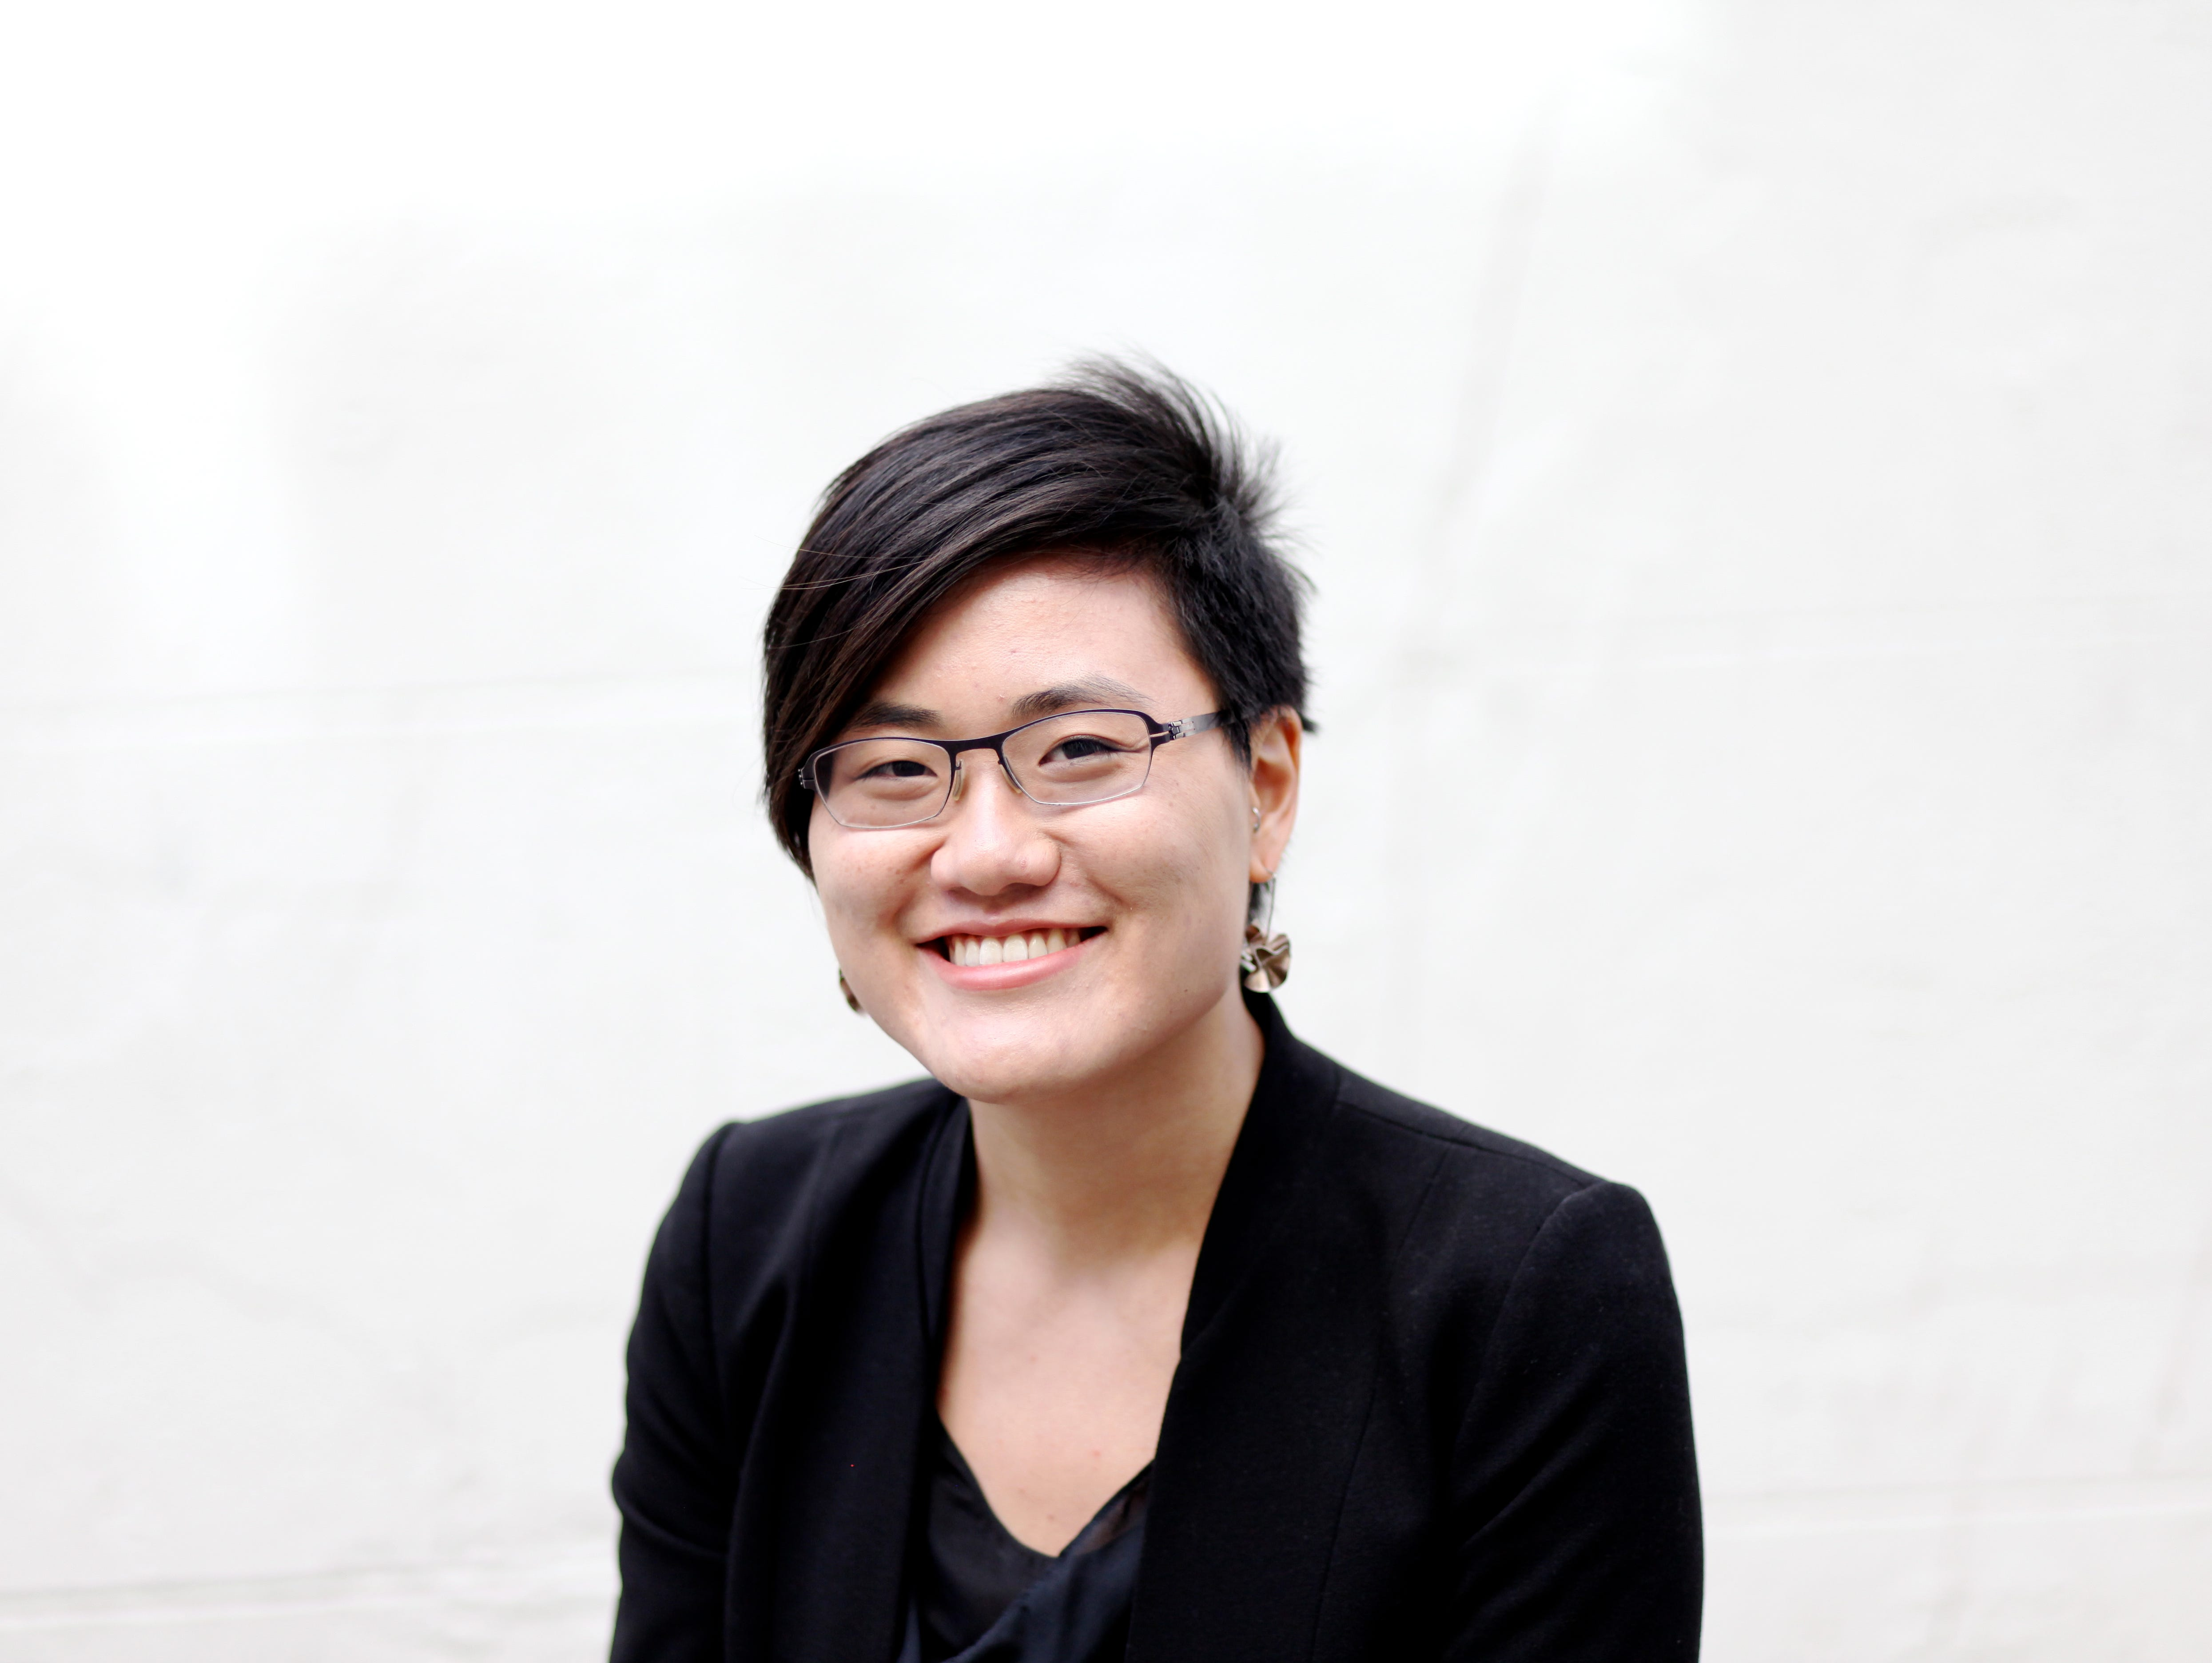 Sarah Nahm is the founder and CEO of Lever, a San Francisco, Calif.-based startup that builds software to help companies source, interview, and hire top talent without compromising their culture and values.